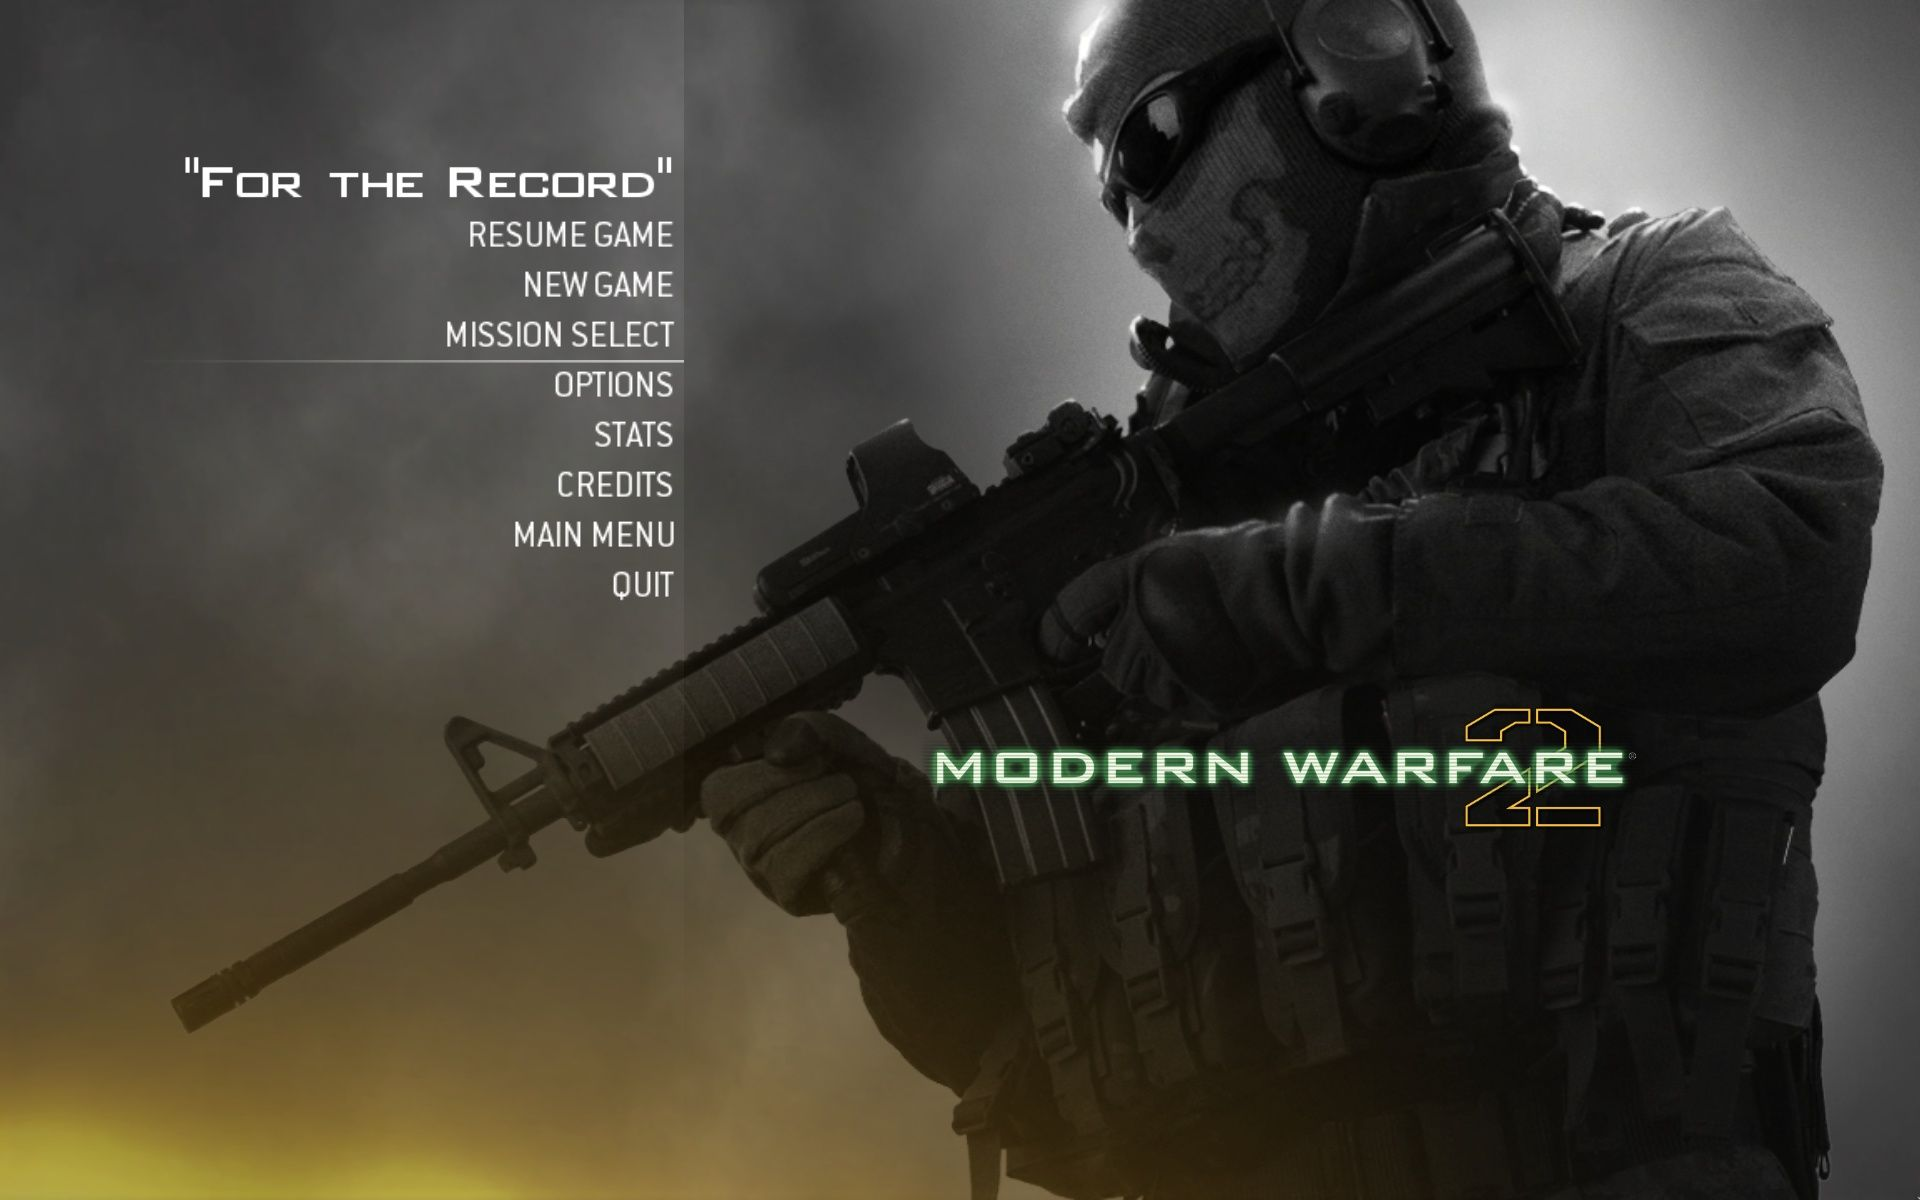 Call of Duty: Modern Warfare 2 Windows Single Player Main Menu